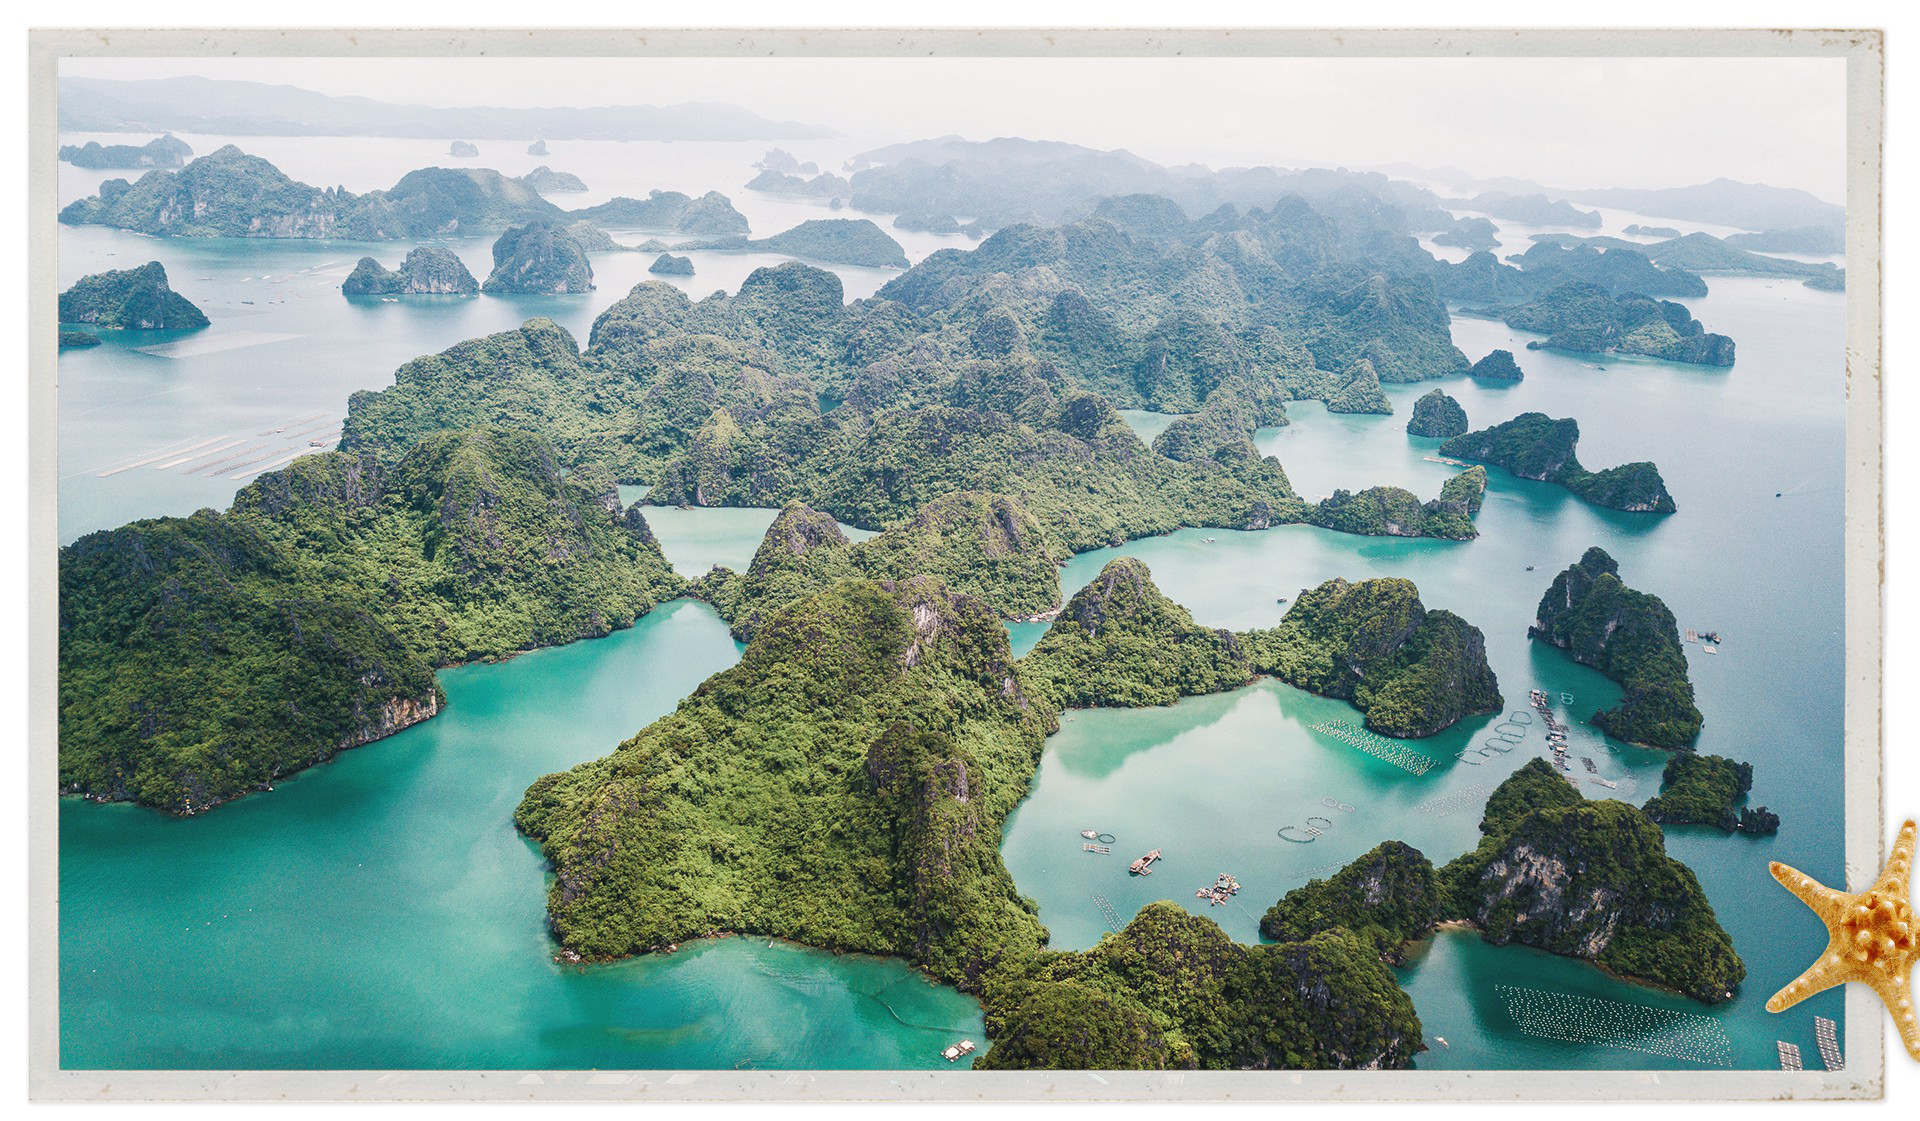 An aerial view of Bai Tu Long Bay in Van Don District, Quang Ninh Province, Vietnam. Photo: Nguyen Khanh / Tuoi Tre